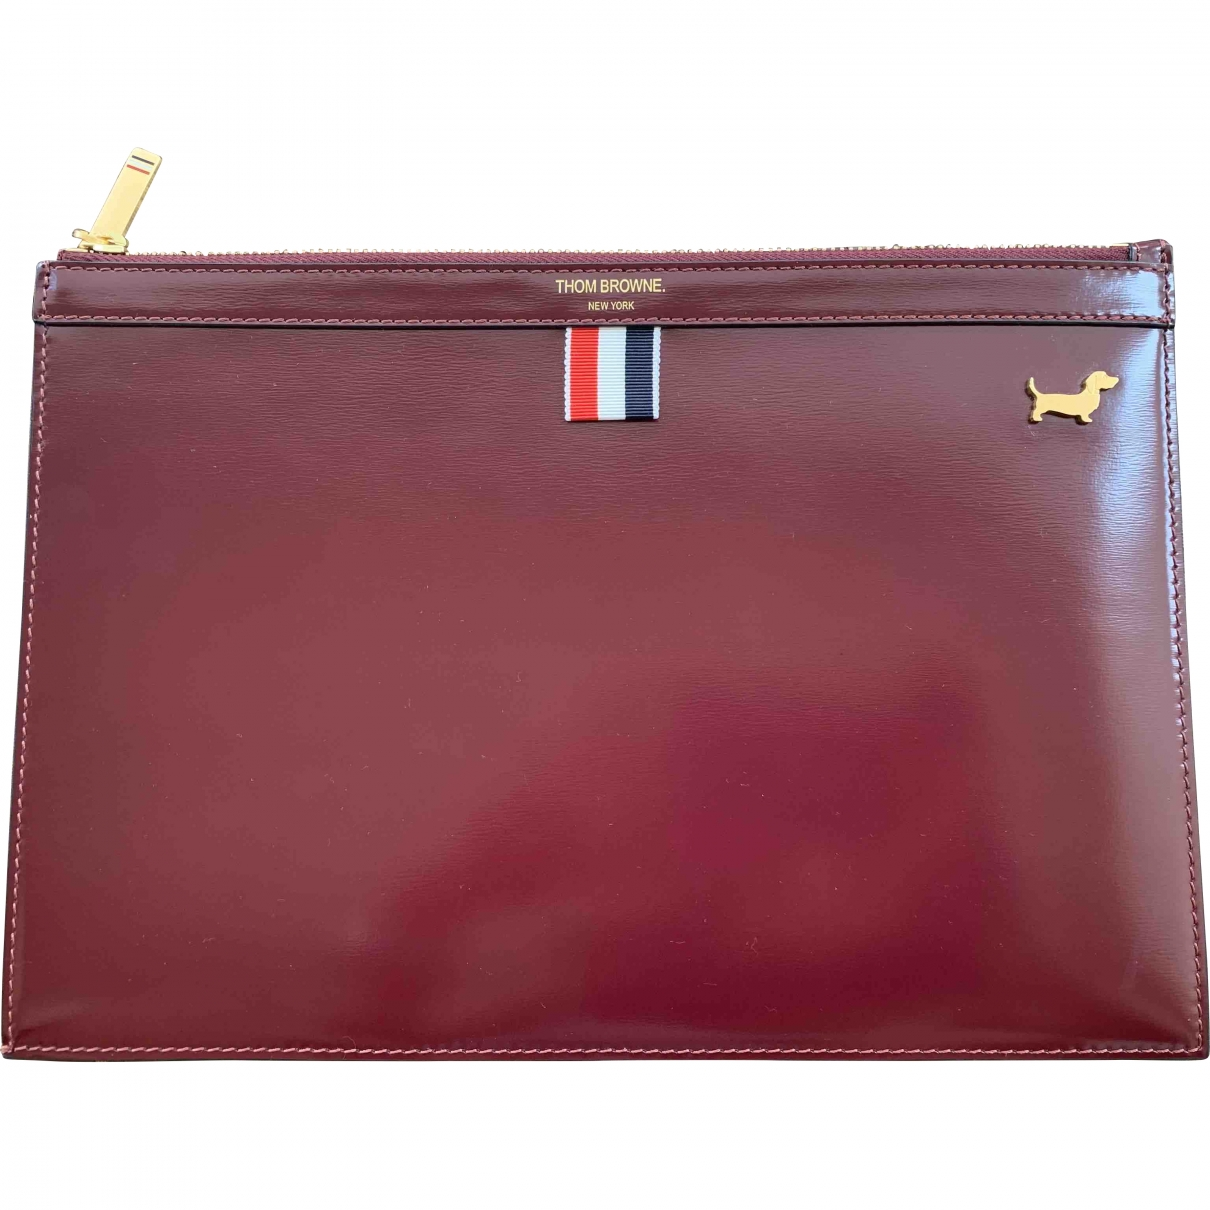 Thom Browne \N Burgundy Patent leather Clutch bag for Women \N